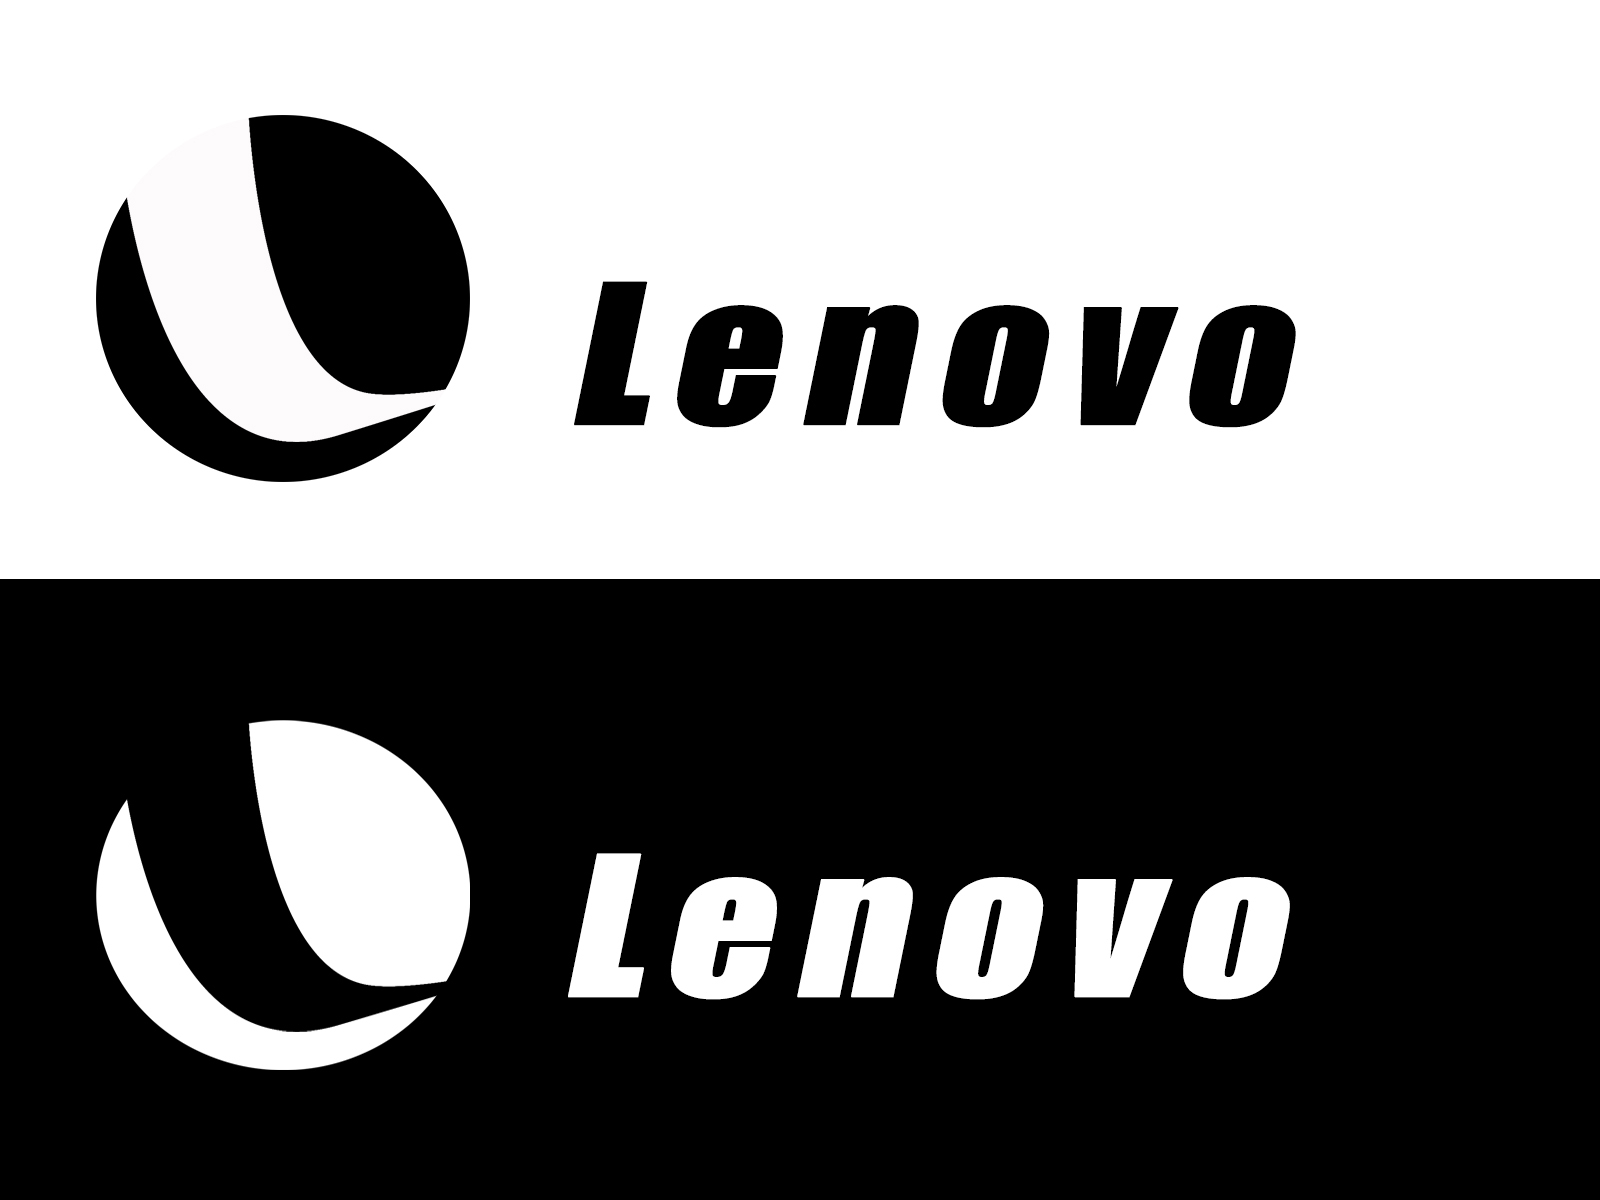 lenovo logo design template by arma yoga on dribbble lenovo logo design template by arma